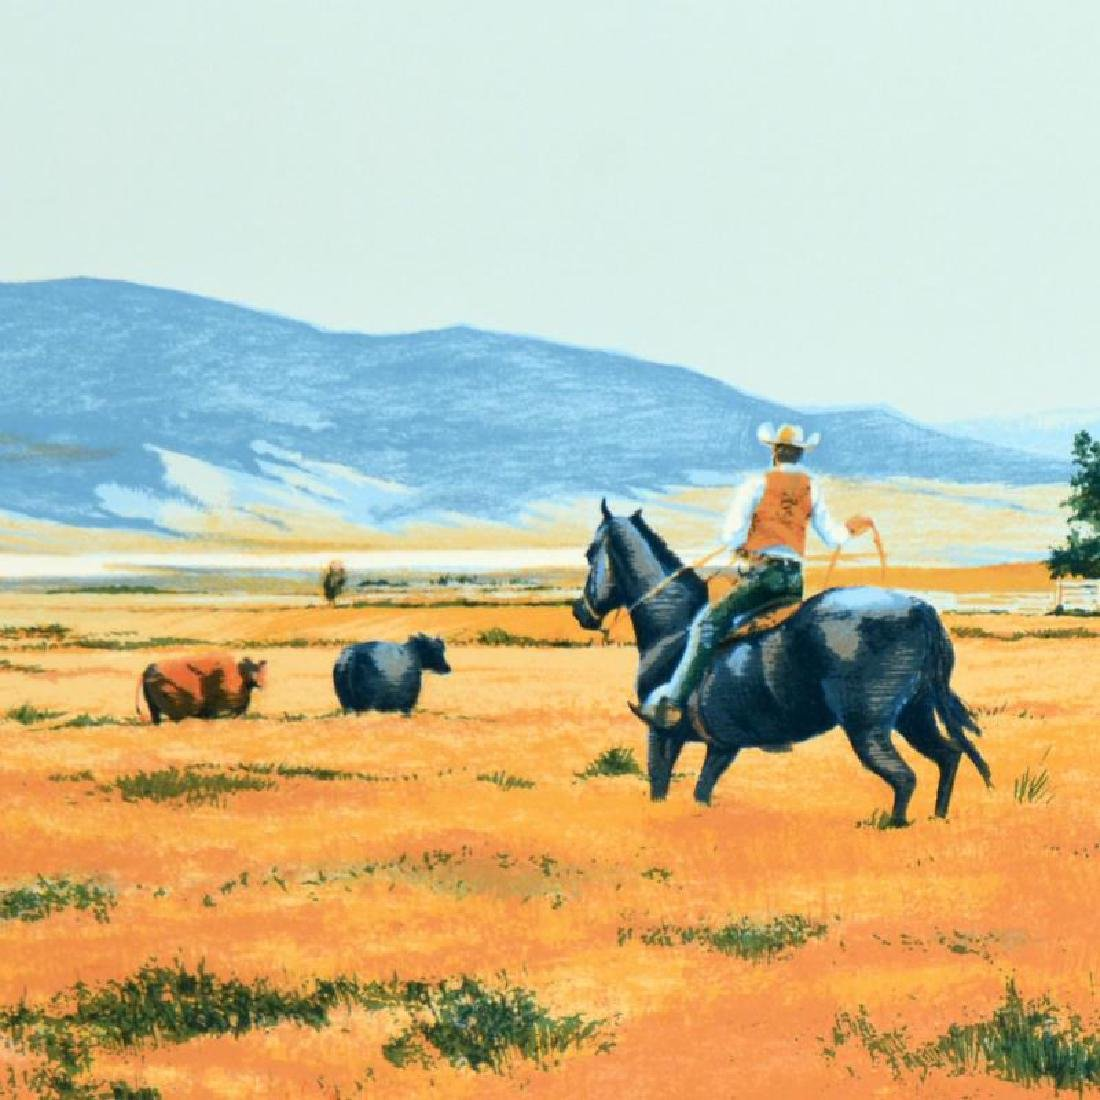 Down From the High Country by Nelson, William - 2